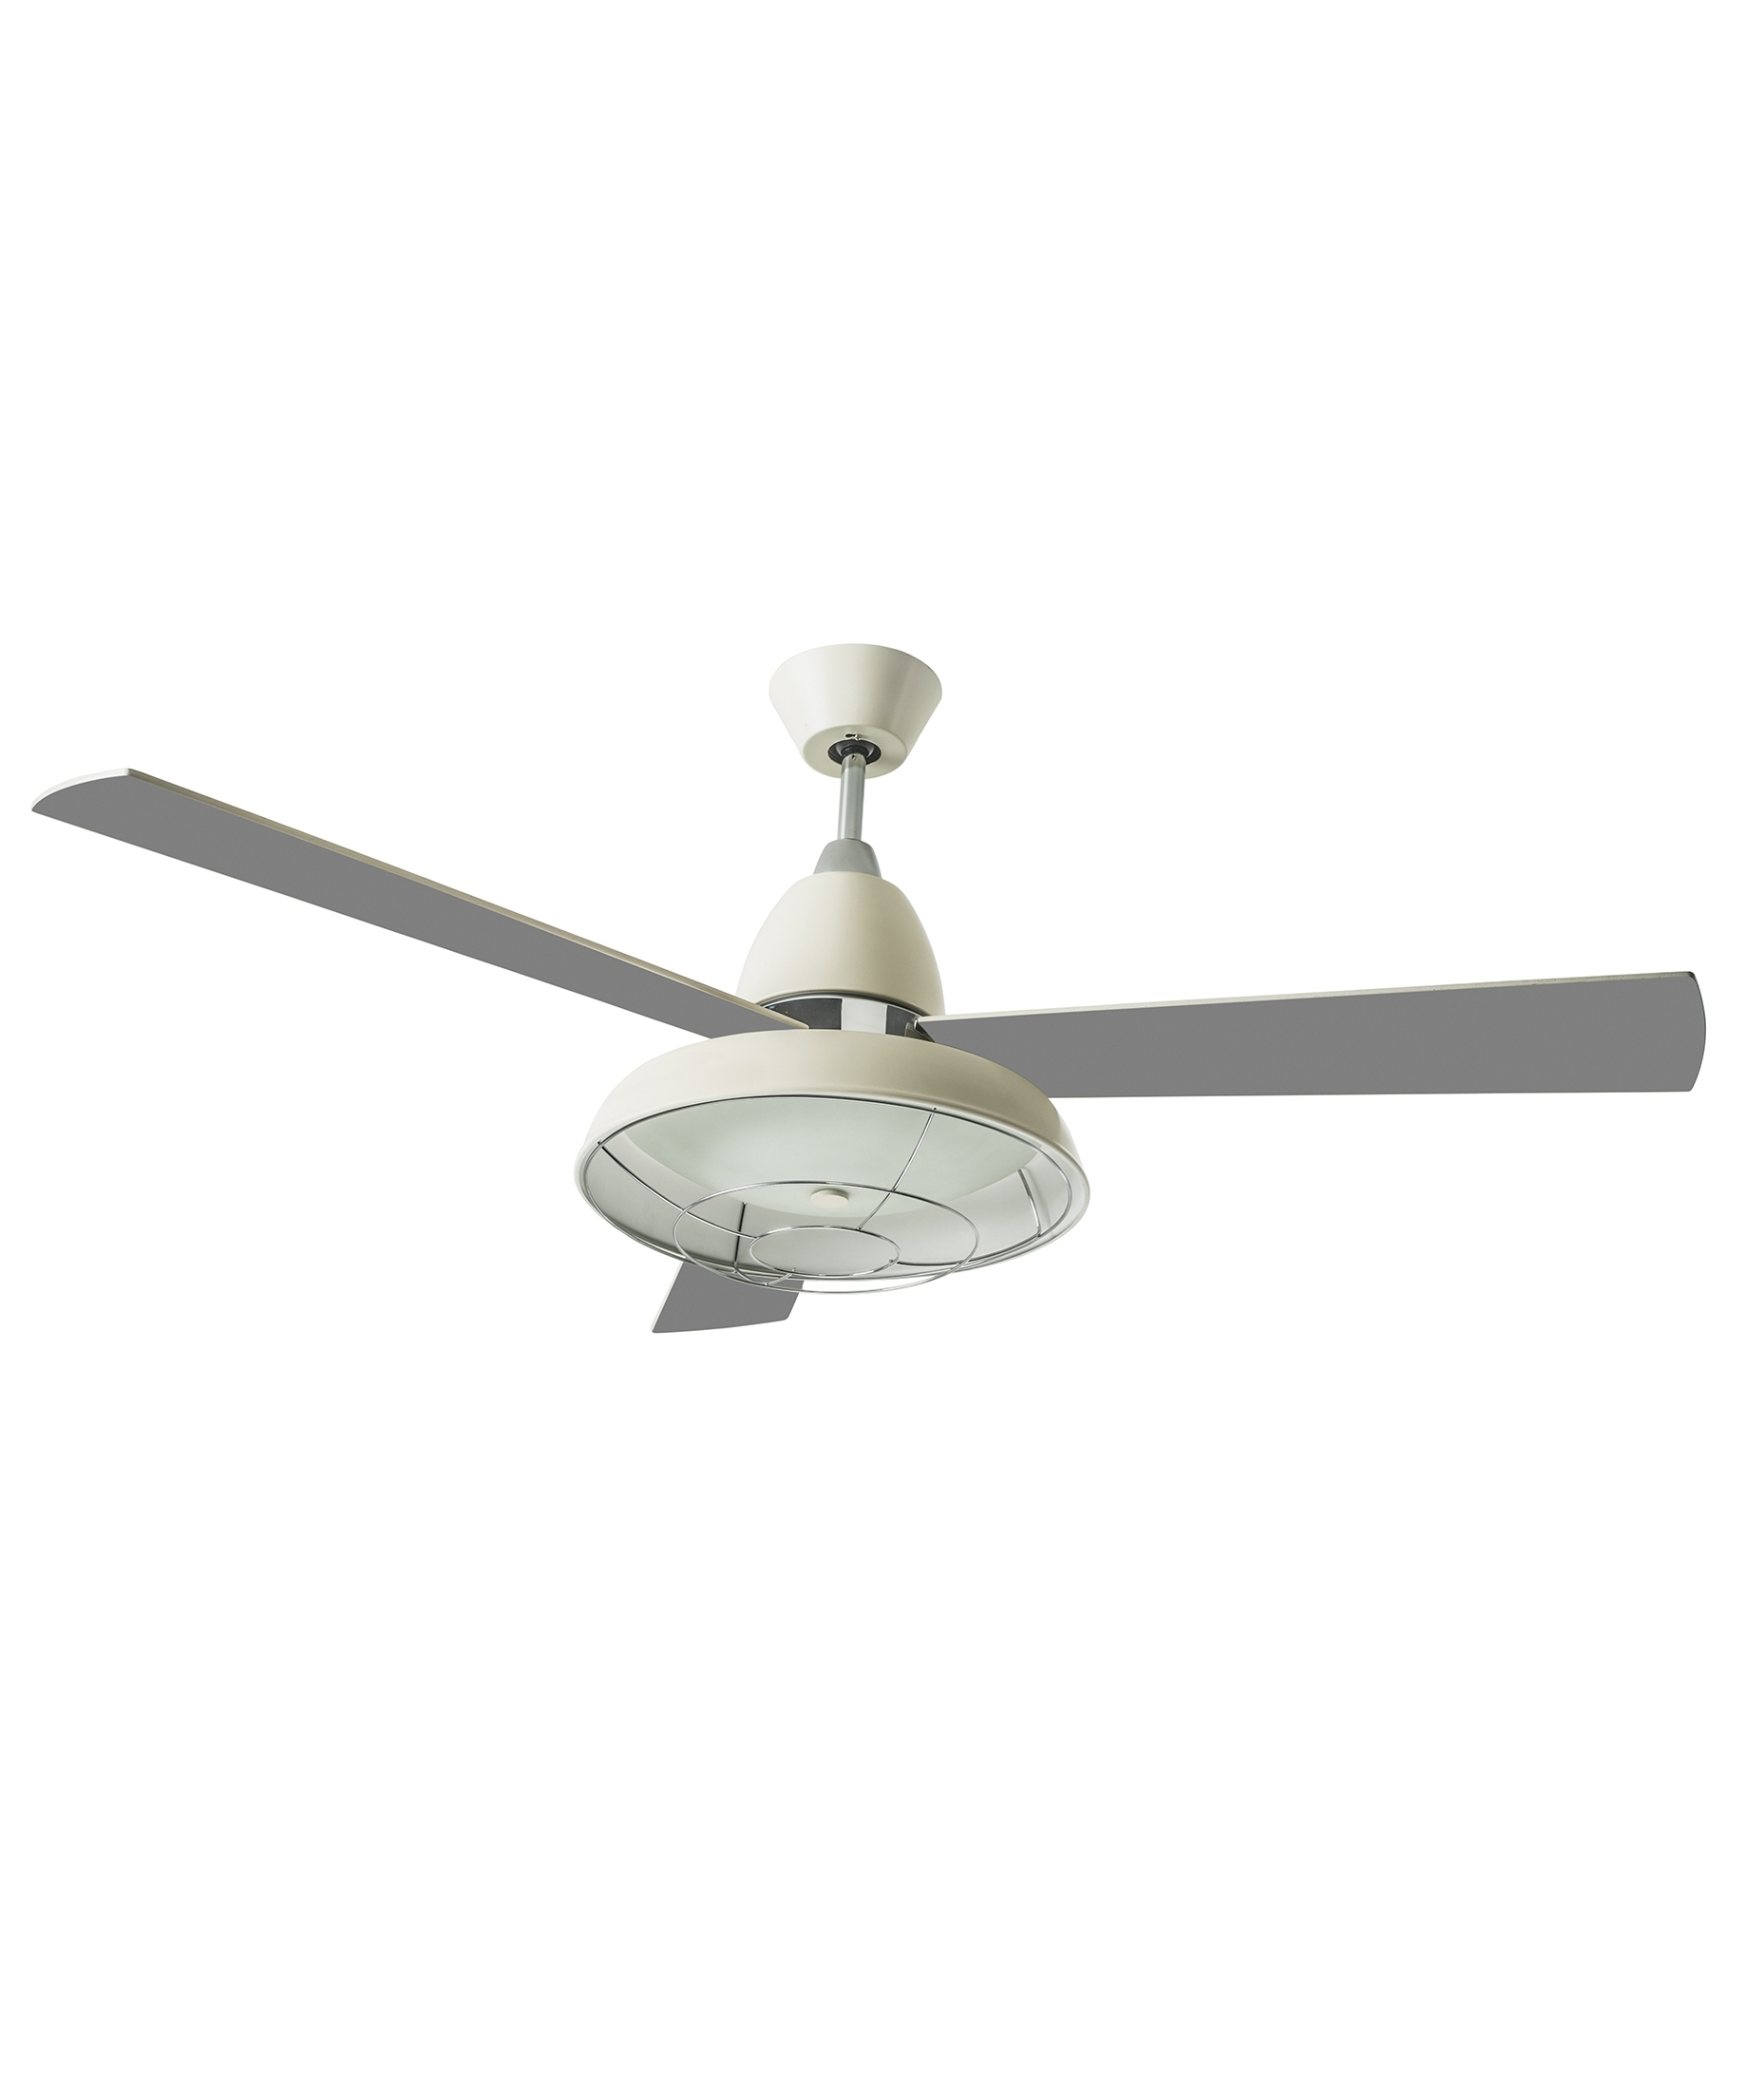 Retro Ceiling Fan with Caged Light in two finishes and